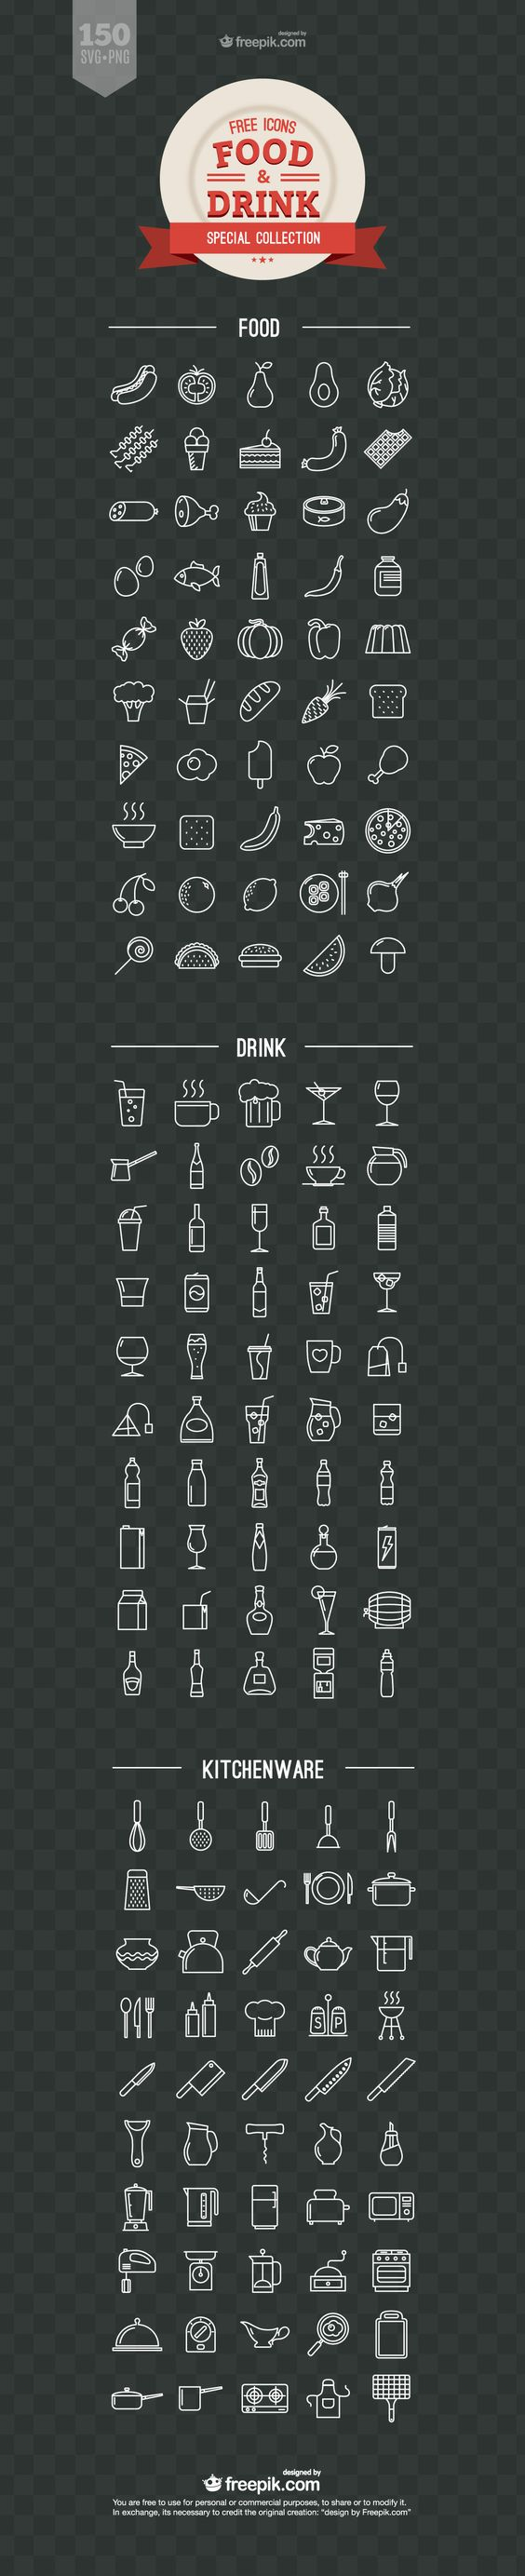 Food and Drink Free Vector Icons